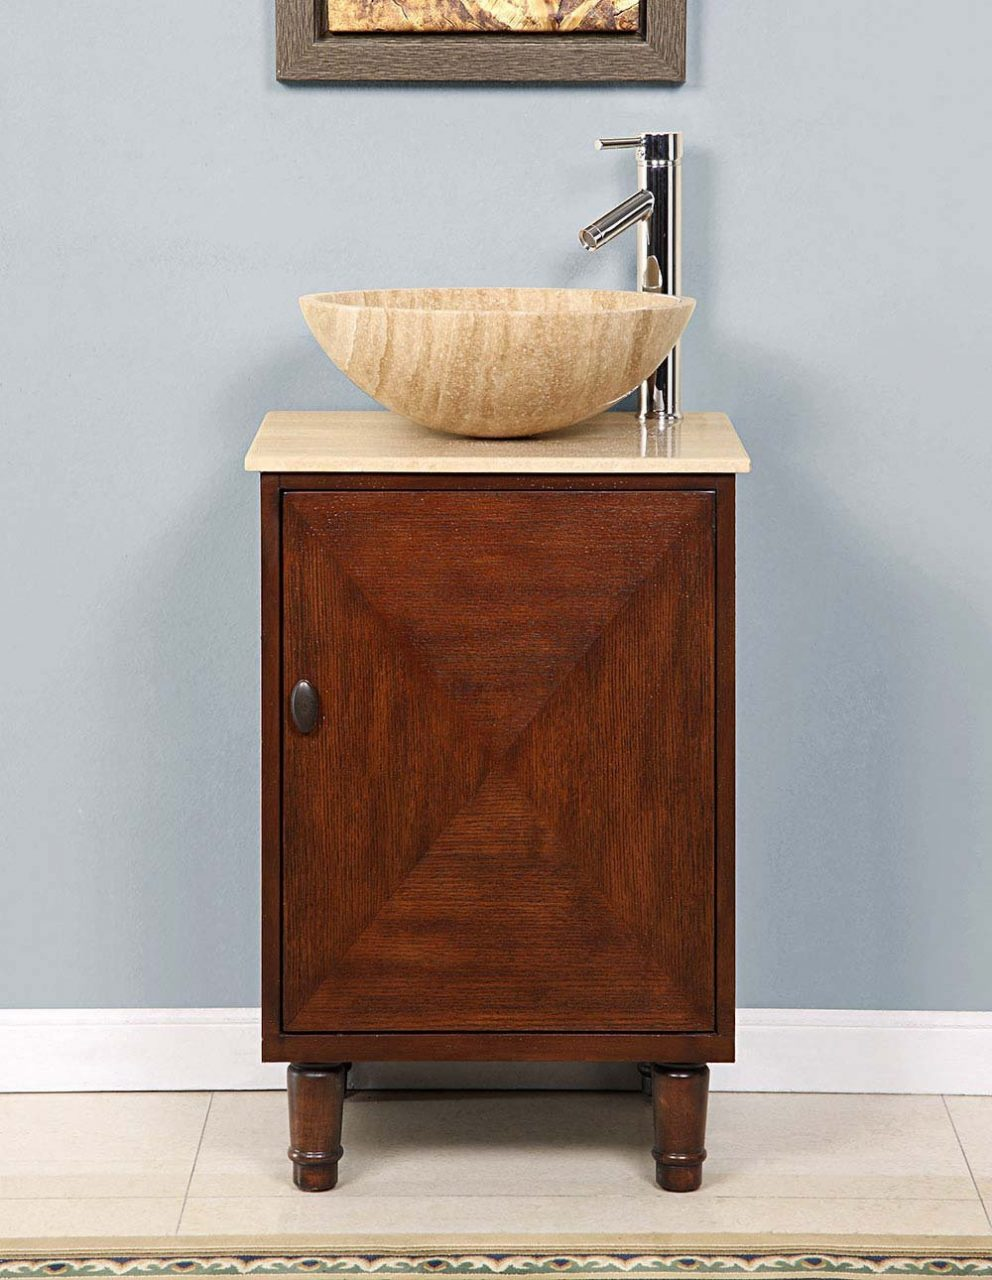 20 Perfecta Pa 154 Single Sink Cabinet Bathroom Vanity Bathroom